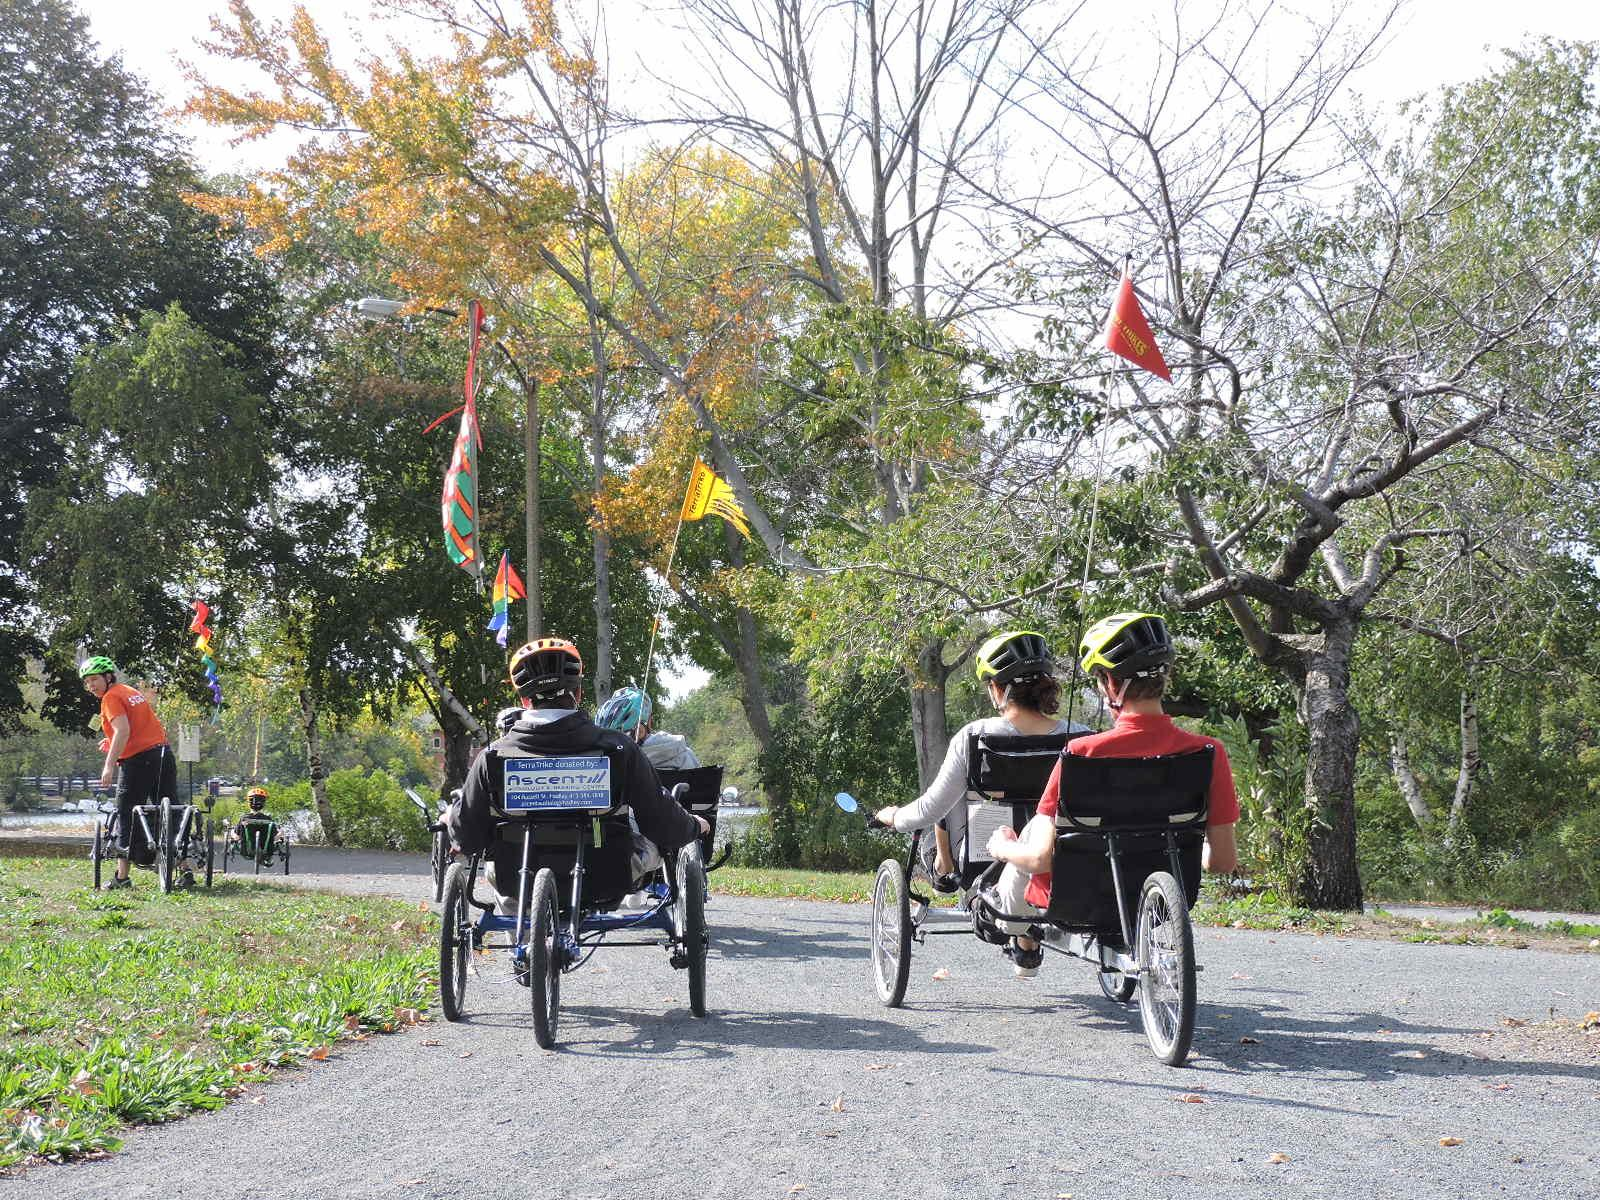 A photo of a group of recumbent cycles on a bike path next to a river. Some of the trees have yellow leaves. The cycles have colorful flags on them.